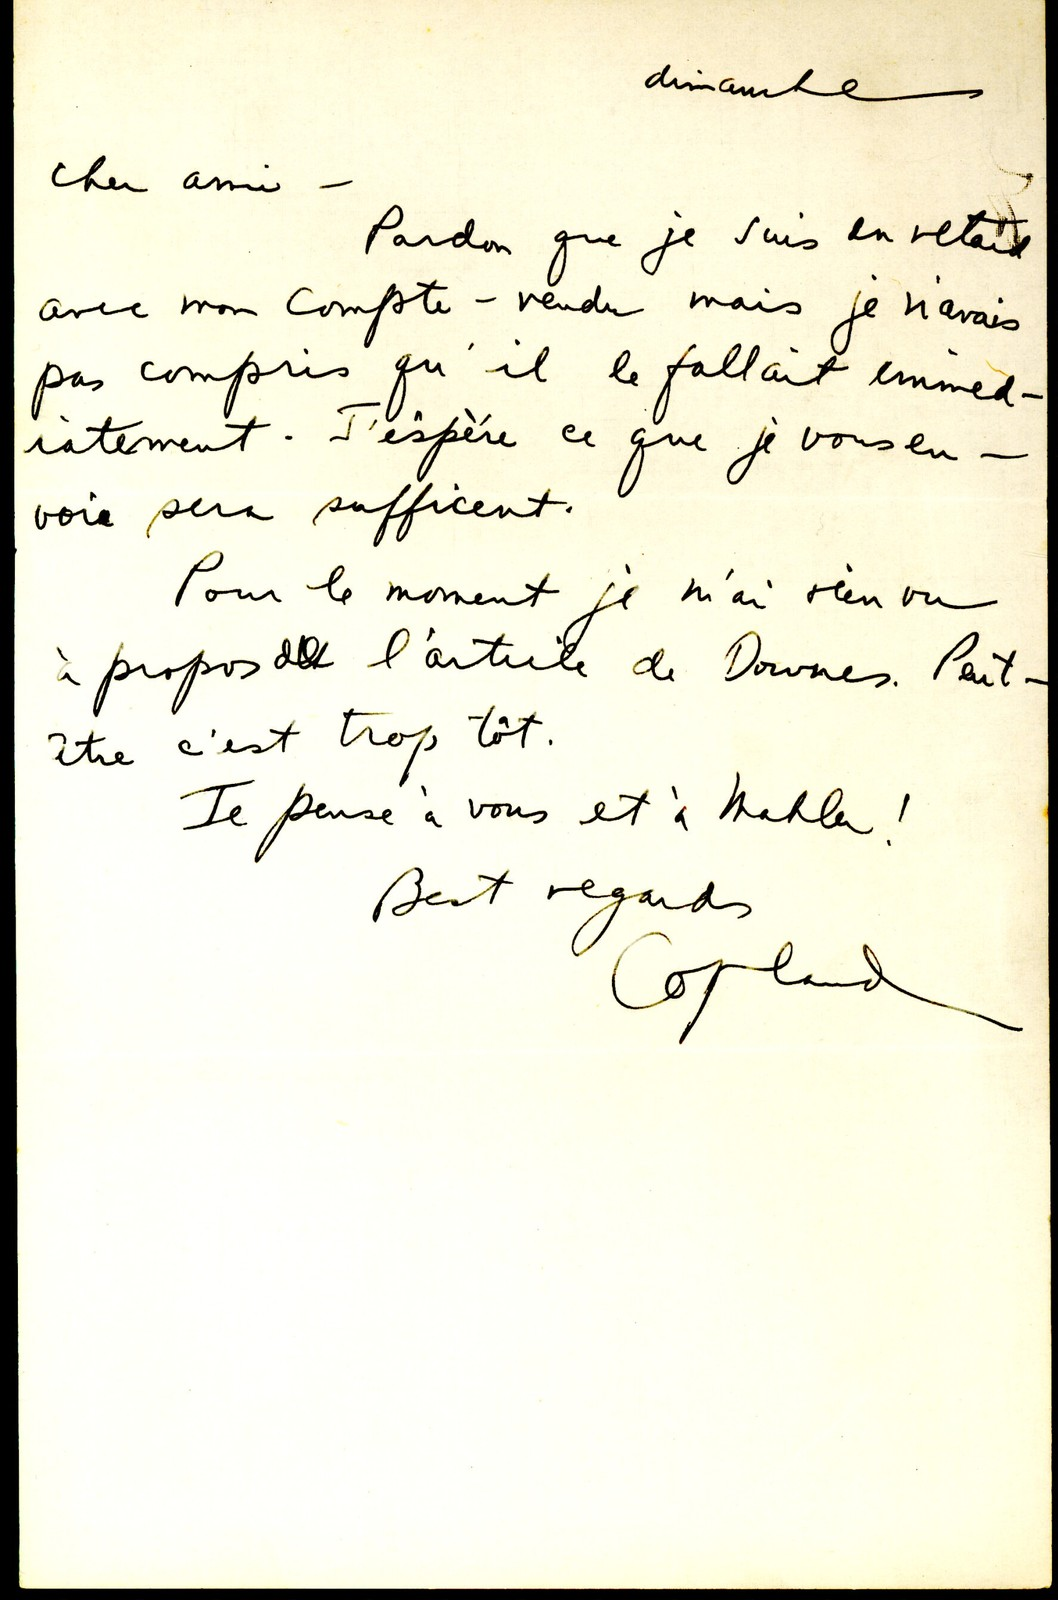 Letter from Aaron Copland to Serge Koussevitzky, undated.